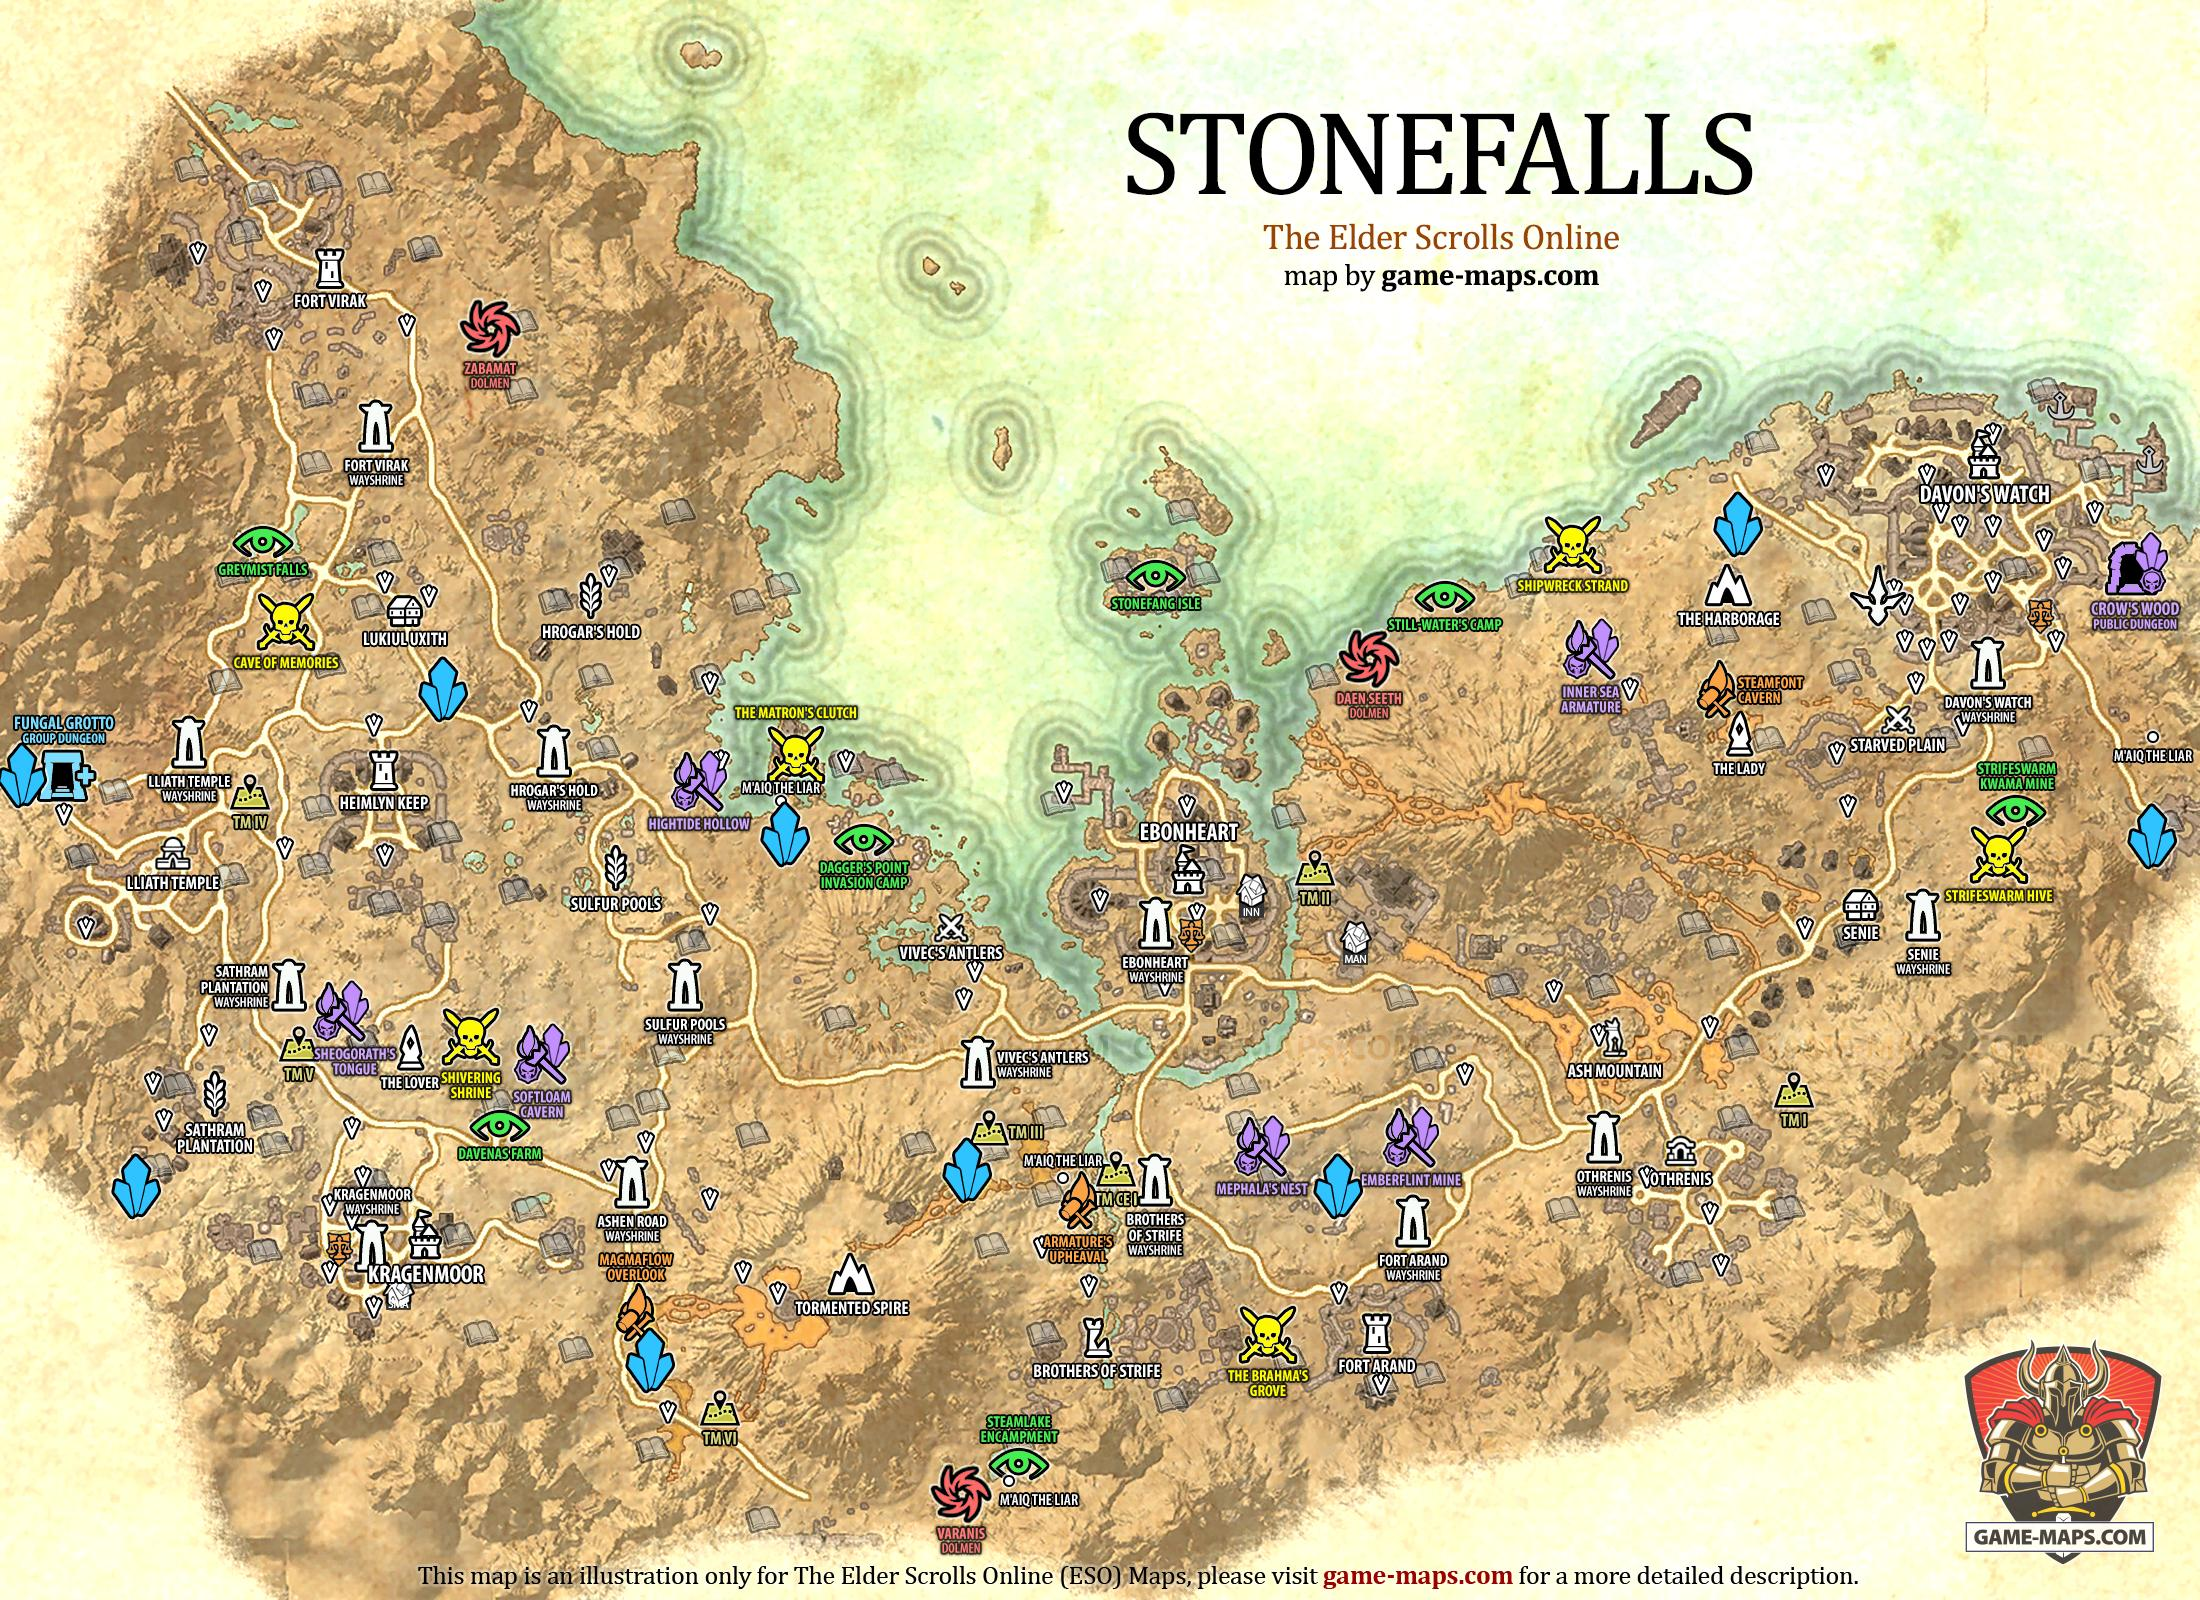 stonefalls map the elder scrolls online game maps com Eso Map stonefalls zone map ebonheart, davon's watch the elder scrolls online eso maps, guides & walkthroughs eso maps